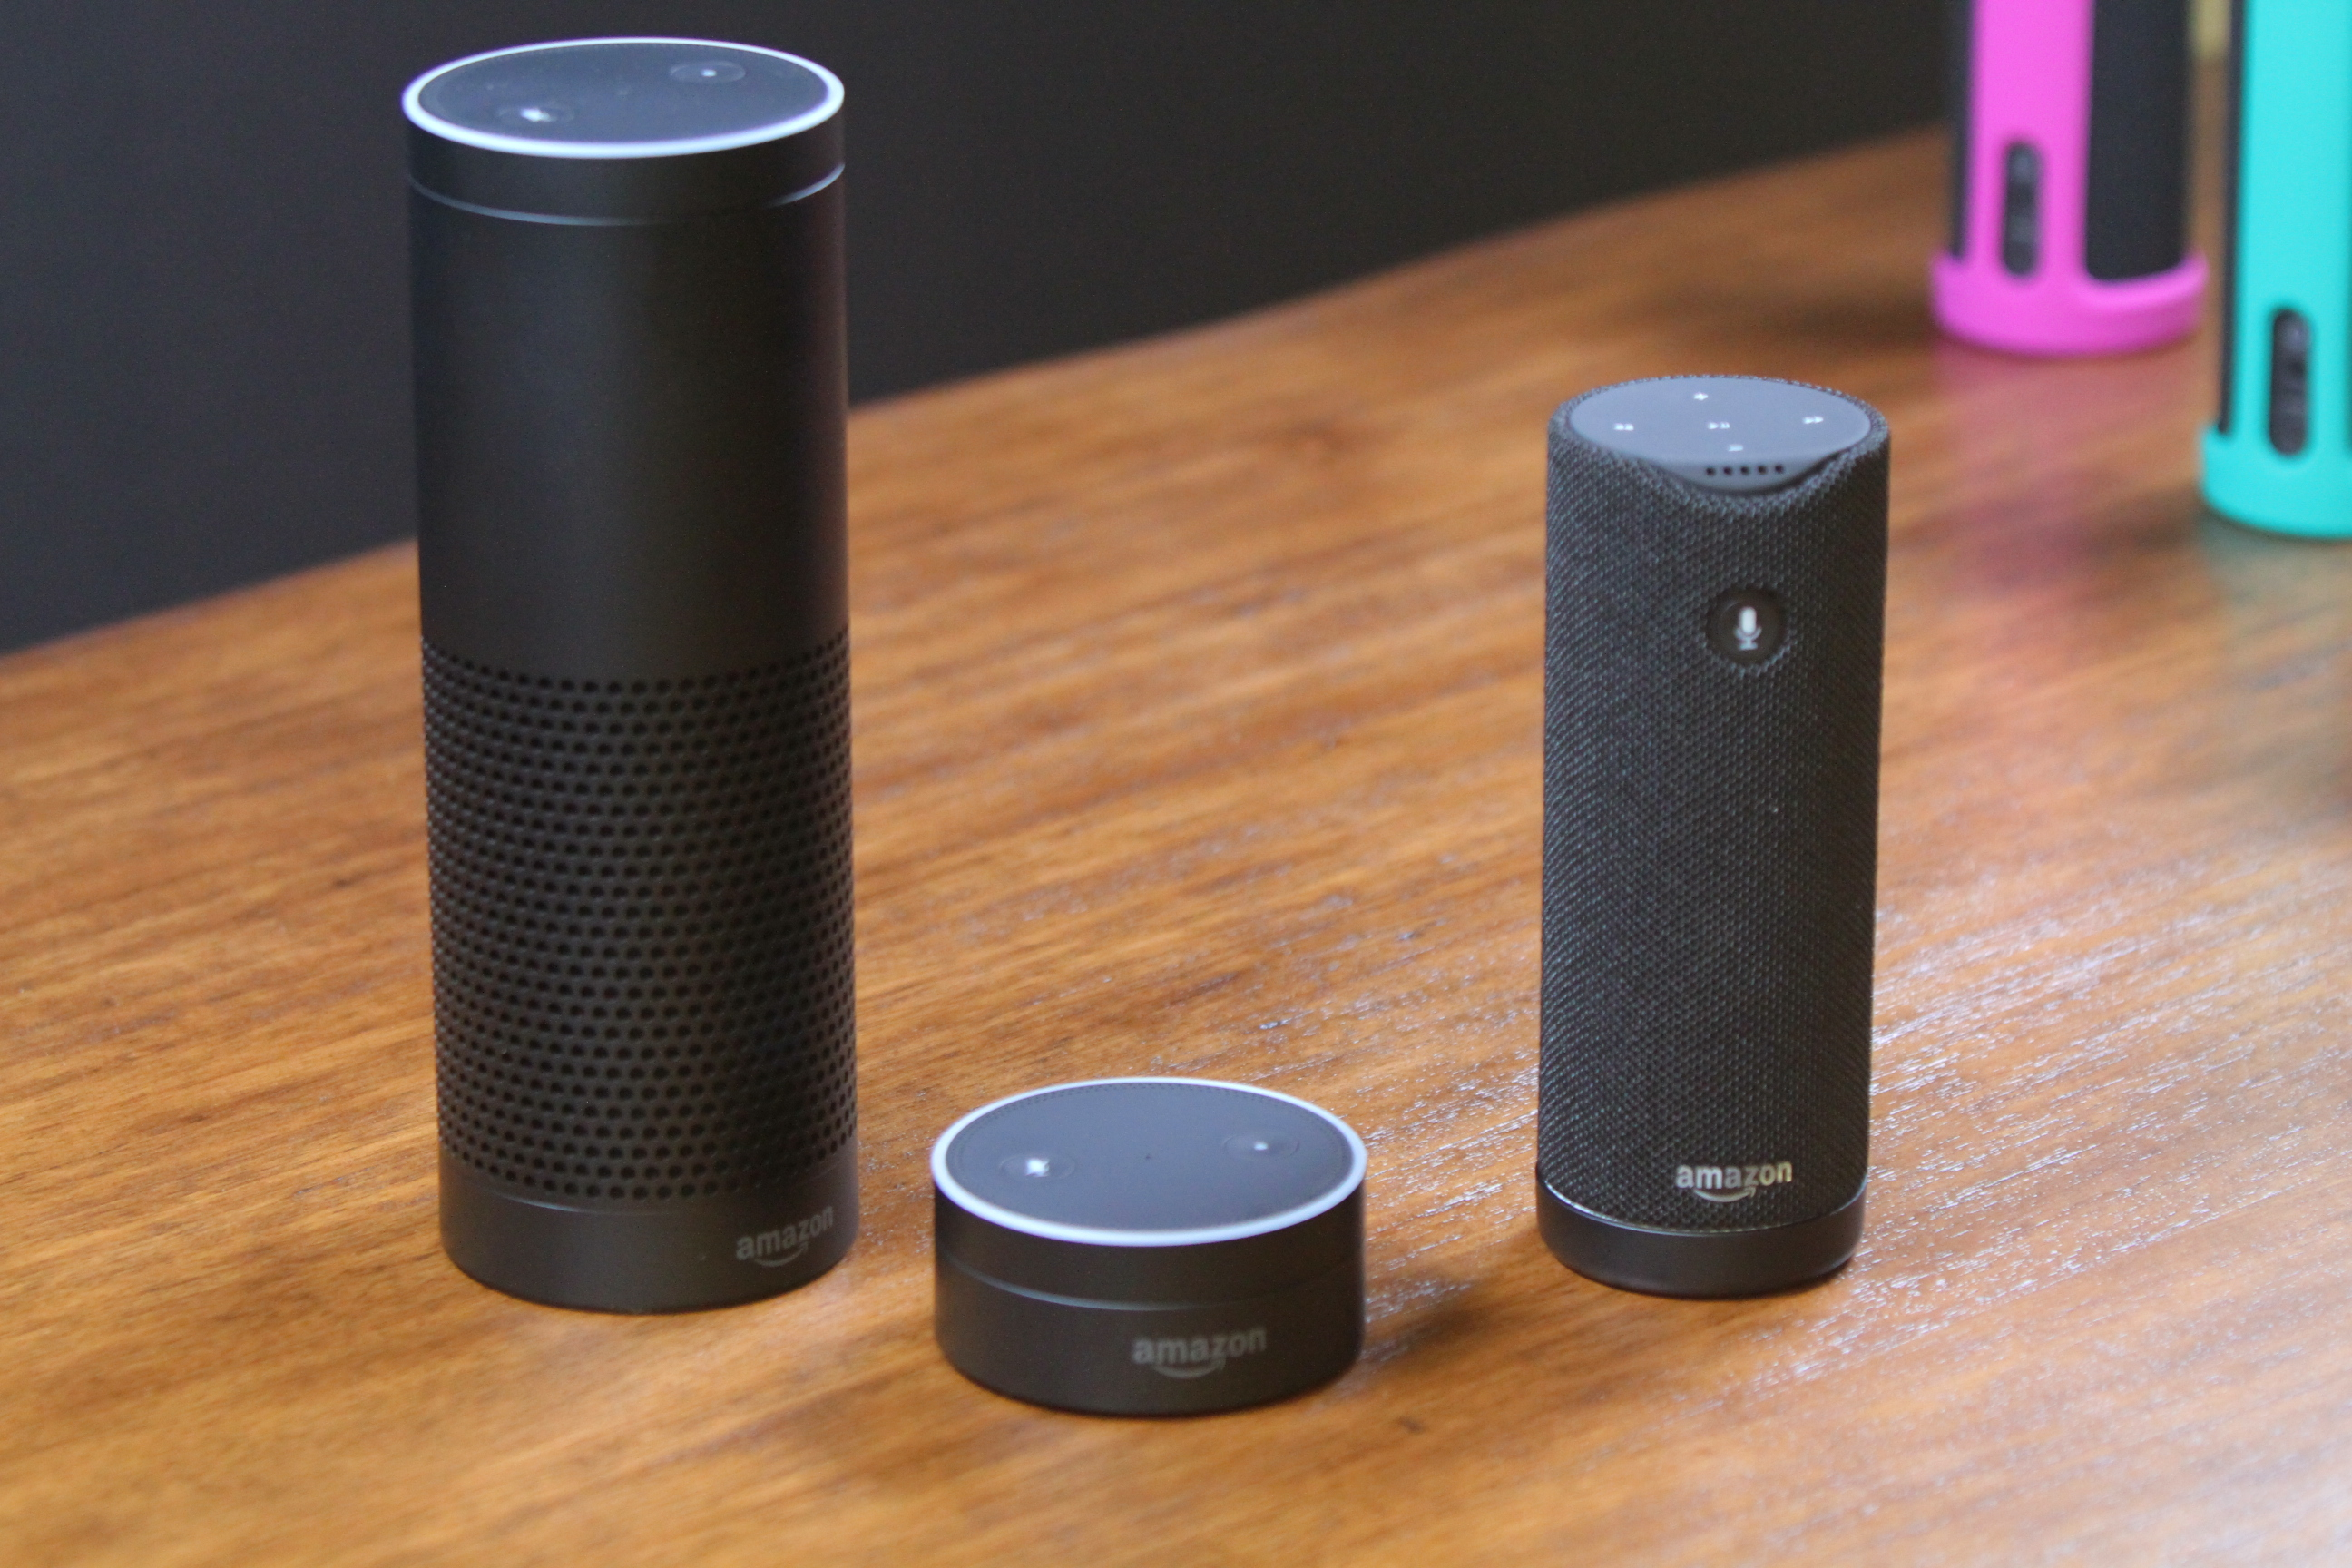 Amazon Unveils 2 New Alexa Devices The 130 Amazon Tap And The 90 Echo Dot also Smart Tips For Saving Money On Your Heating Bills Infographic likewise 472153 1 as well Watch moreover Honeywell Mist Mate Cool Mist Humidifier Black Hul520b. on room thermostats